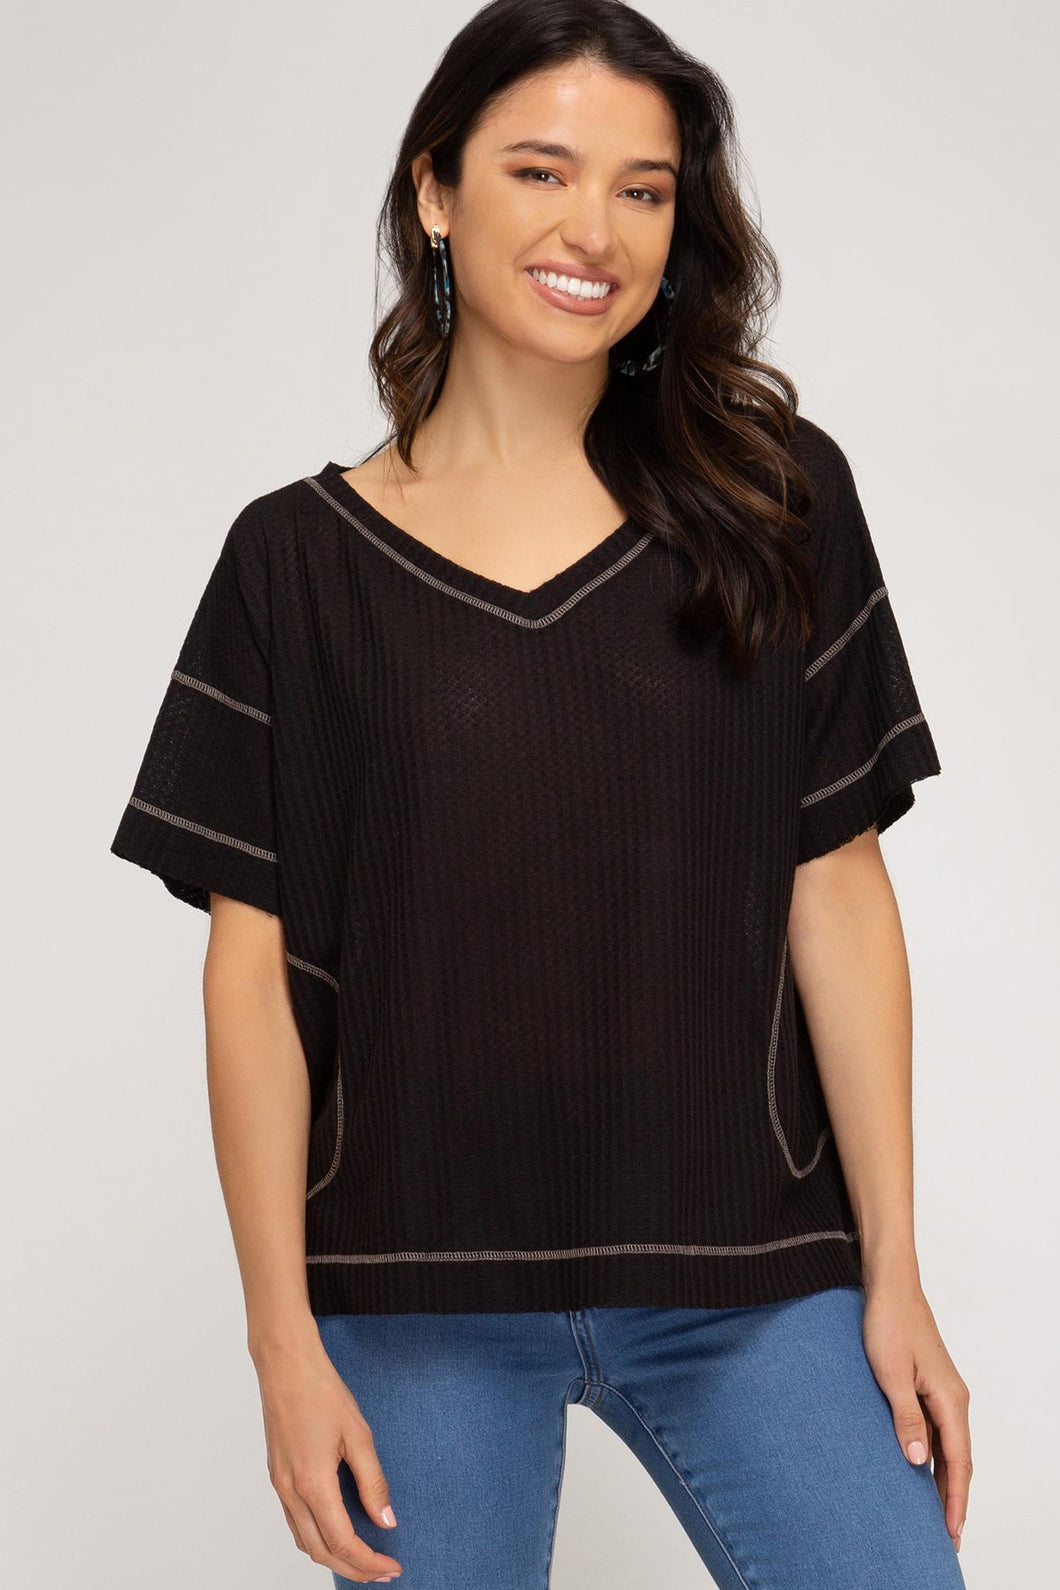 Emerson Thermal Knit Top Black